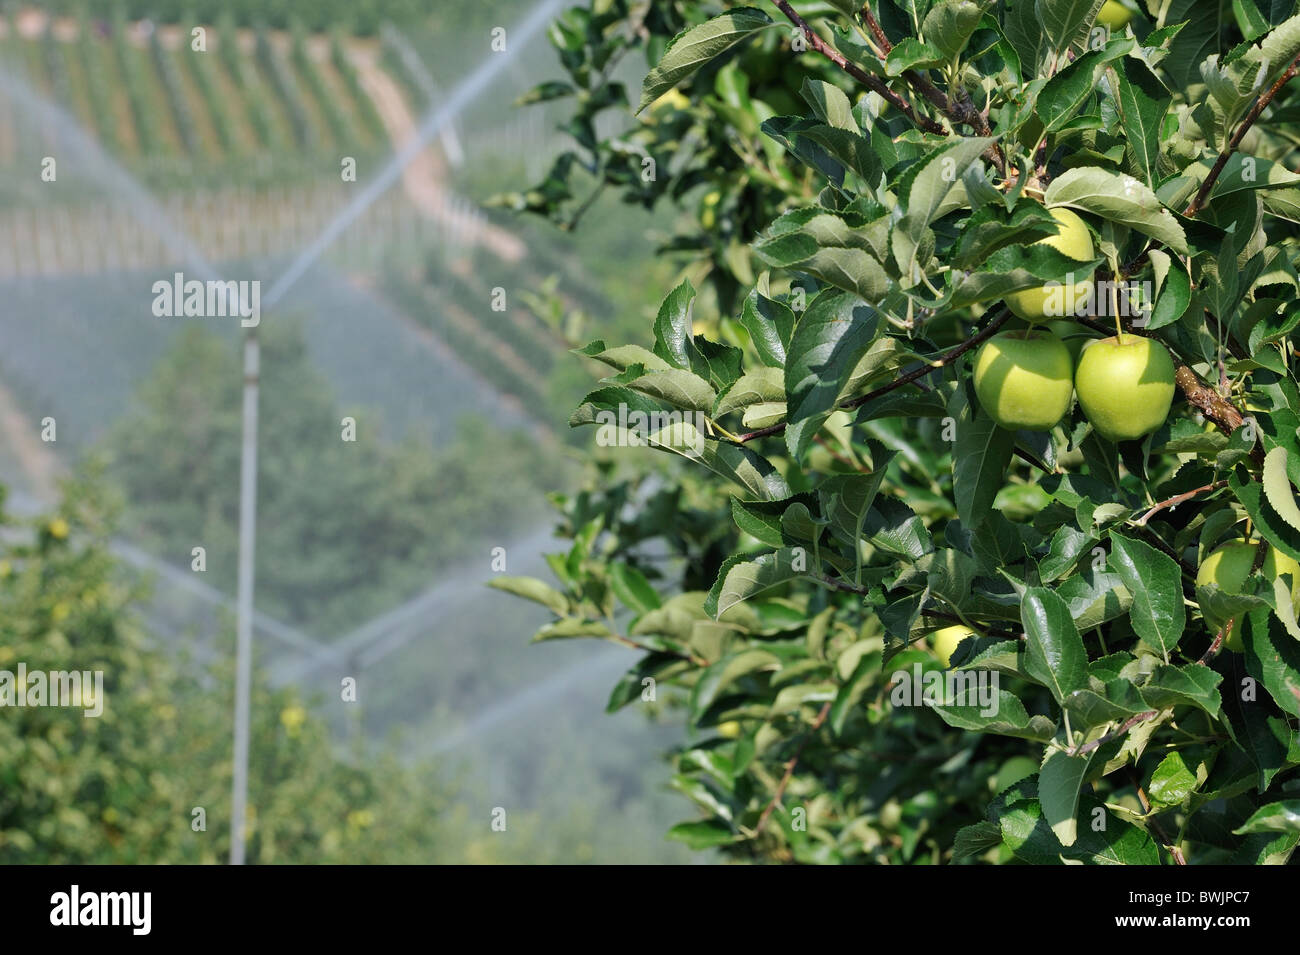 being an apple tree How to prune an apple tree with shears, a pruning saw and common sense, you don't have to be a tree surgeon to improve the appearance, yield and health of your apple trees  you don't have to.